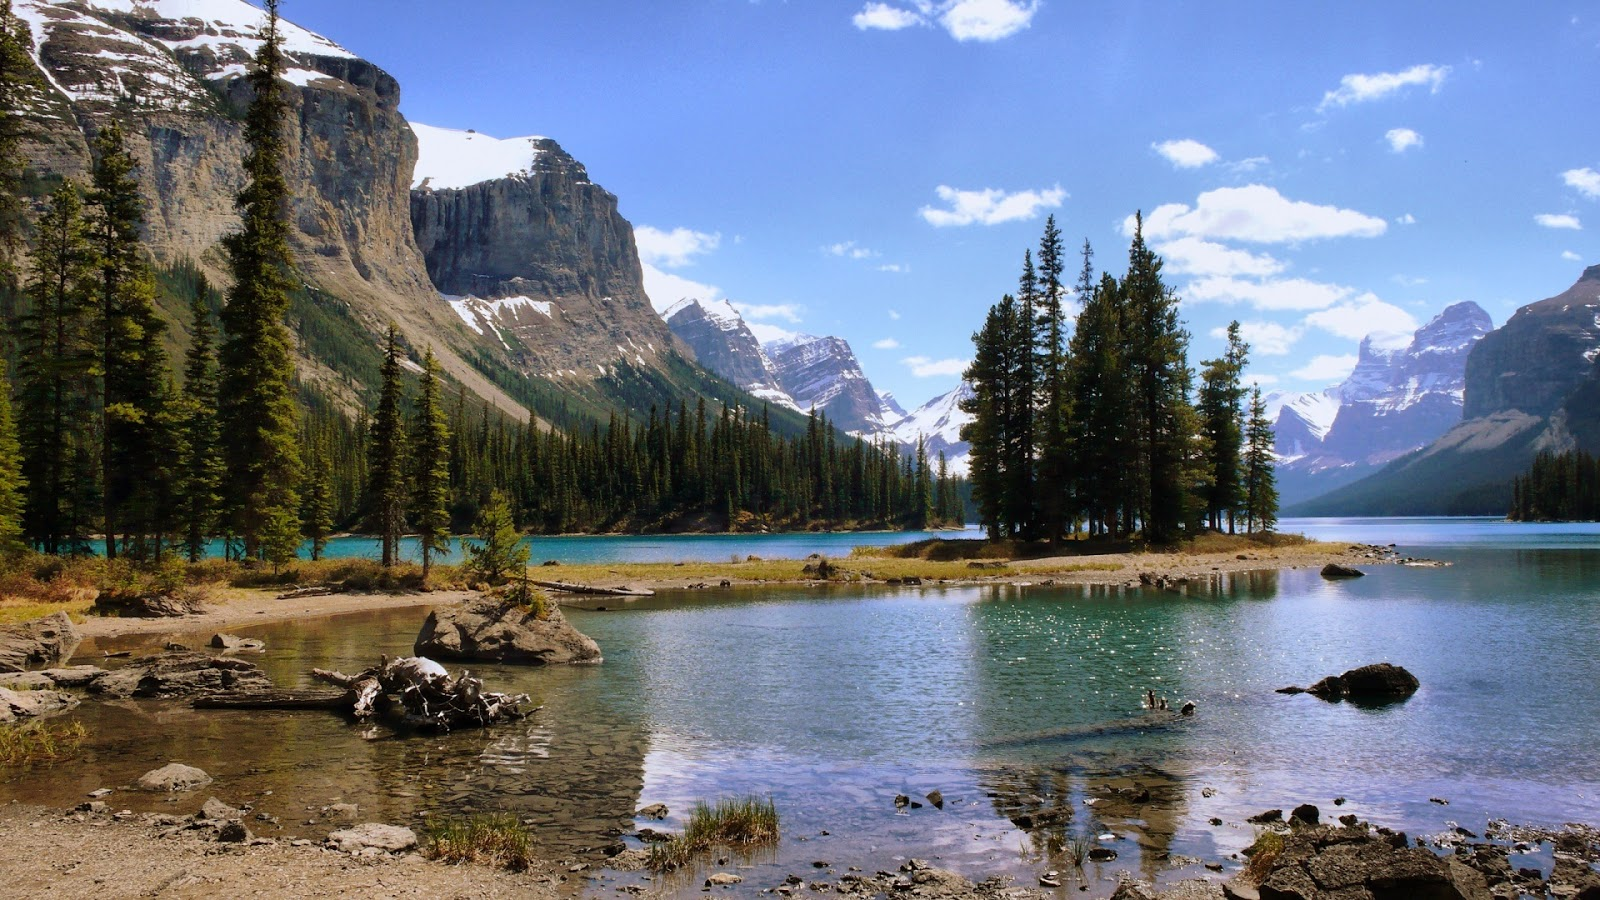 http://2.bp.blogspot.com/-YtBICDfidG4/T47D0G9CCnI/AAAAAAAADS0/G3Z-xSLnQo4/s1600/canadian-mountain-lake-windows-8-wallpaper-1920x1080.jpg